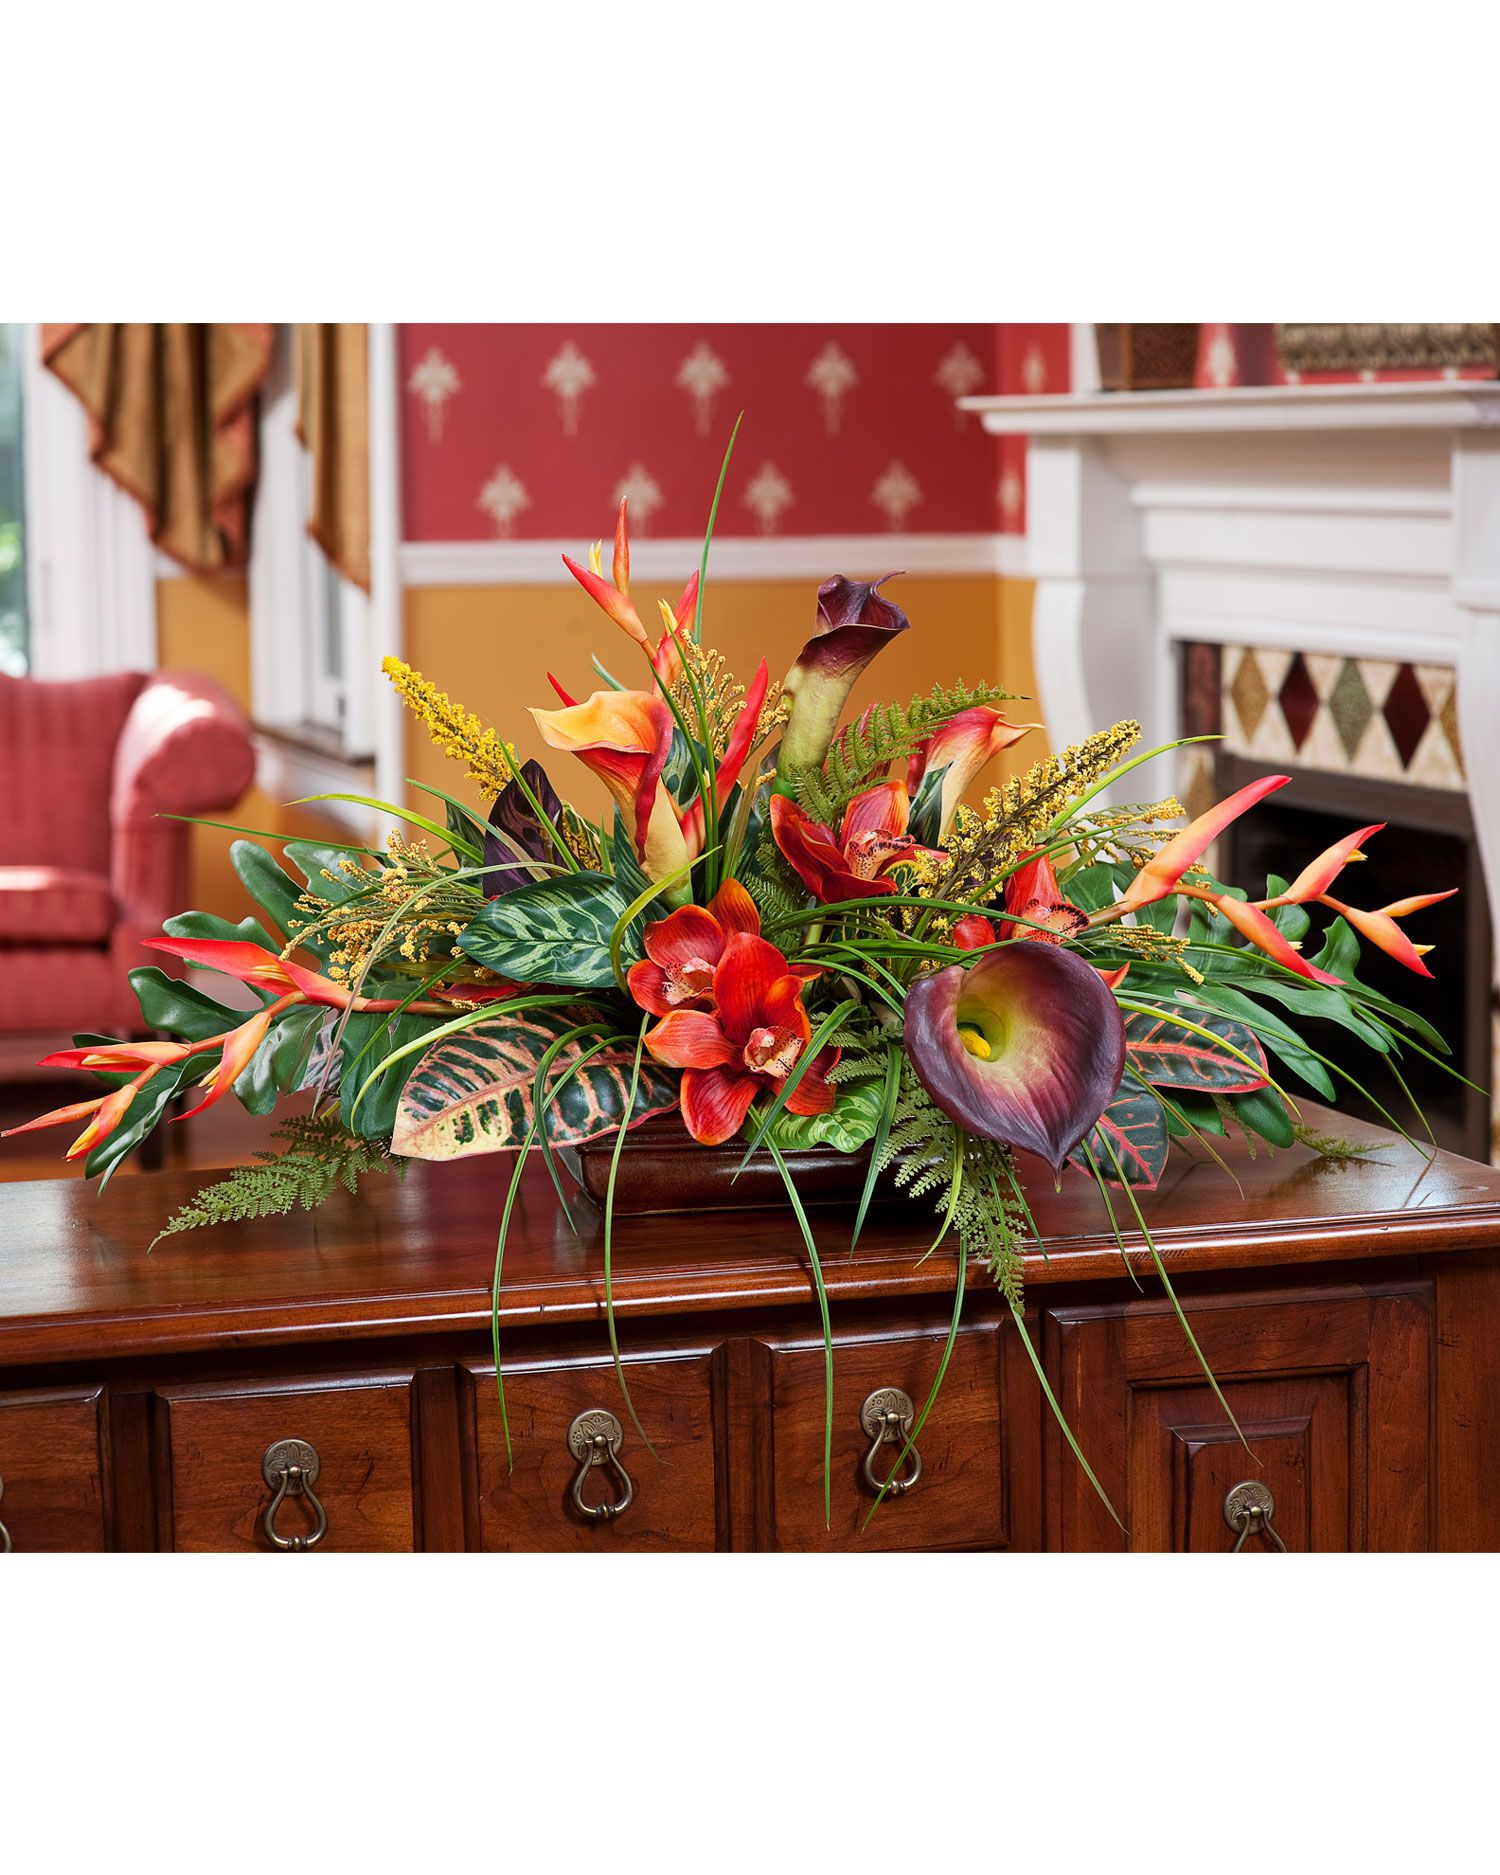 Fake floral arrangements for your table centerpiece Christmas orchid arrangements